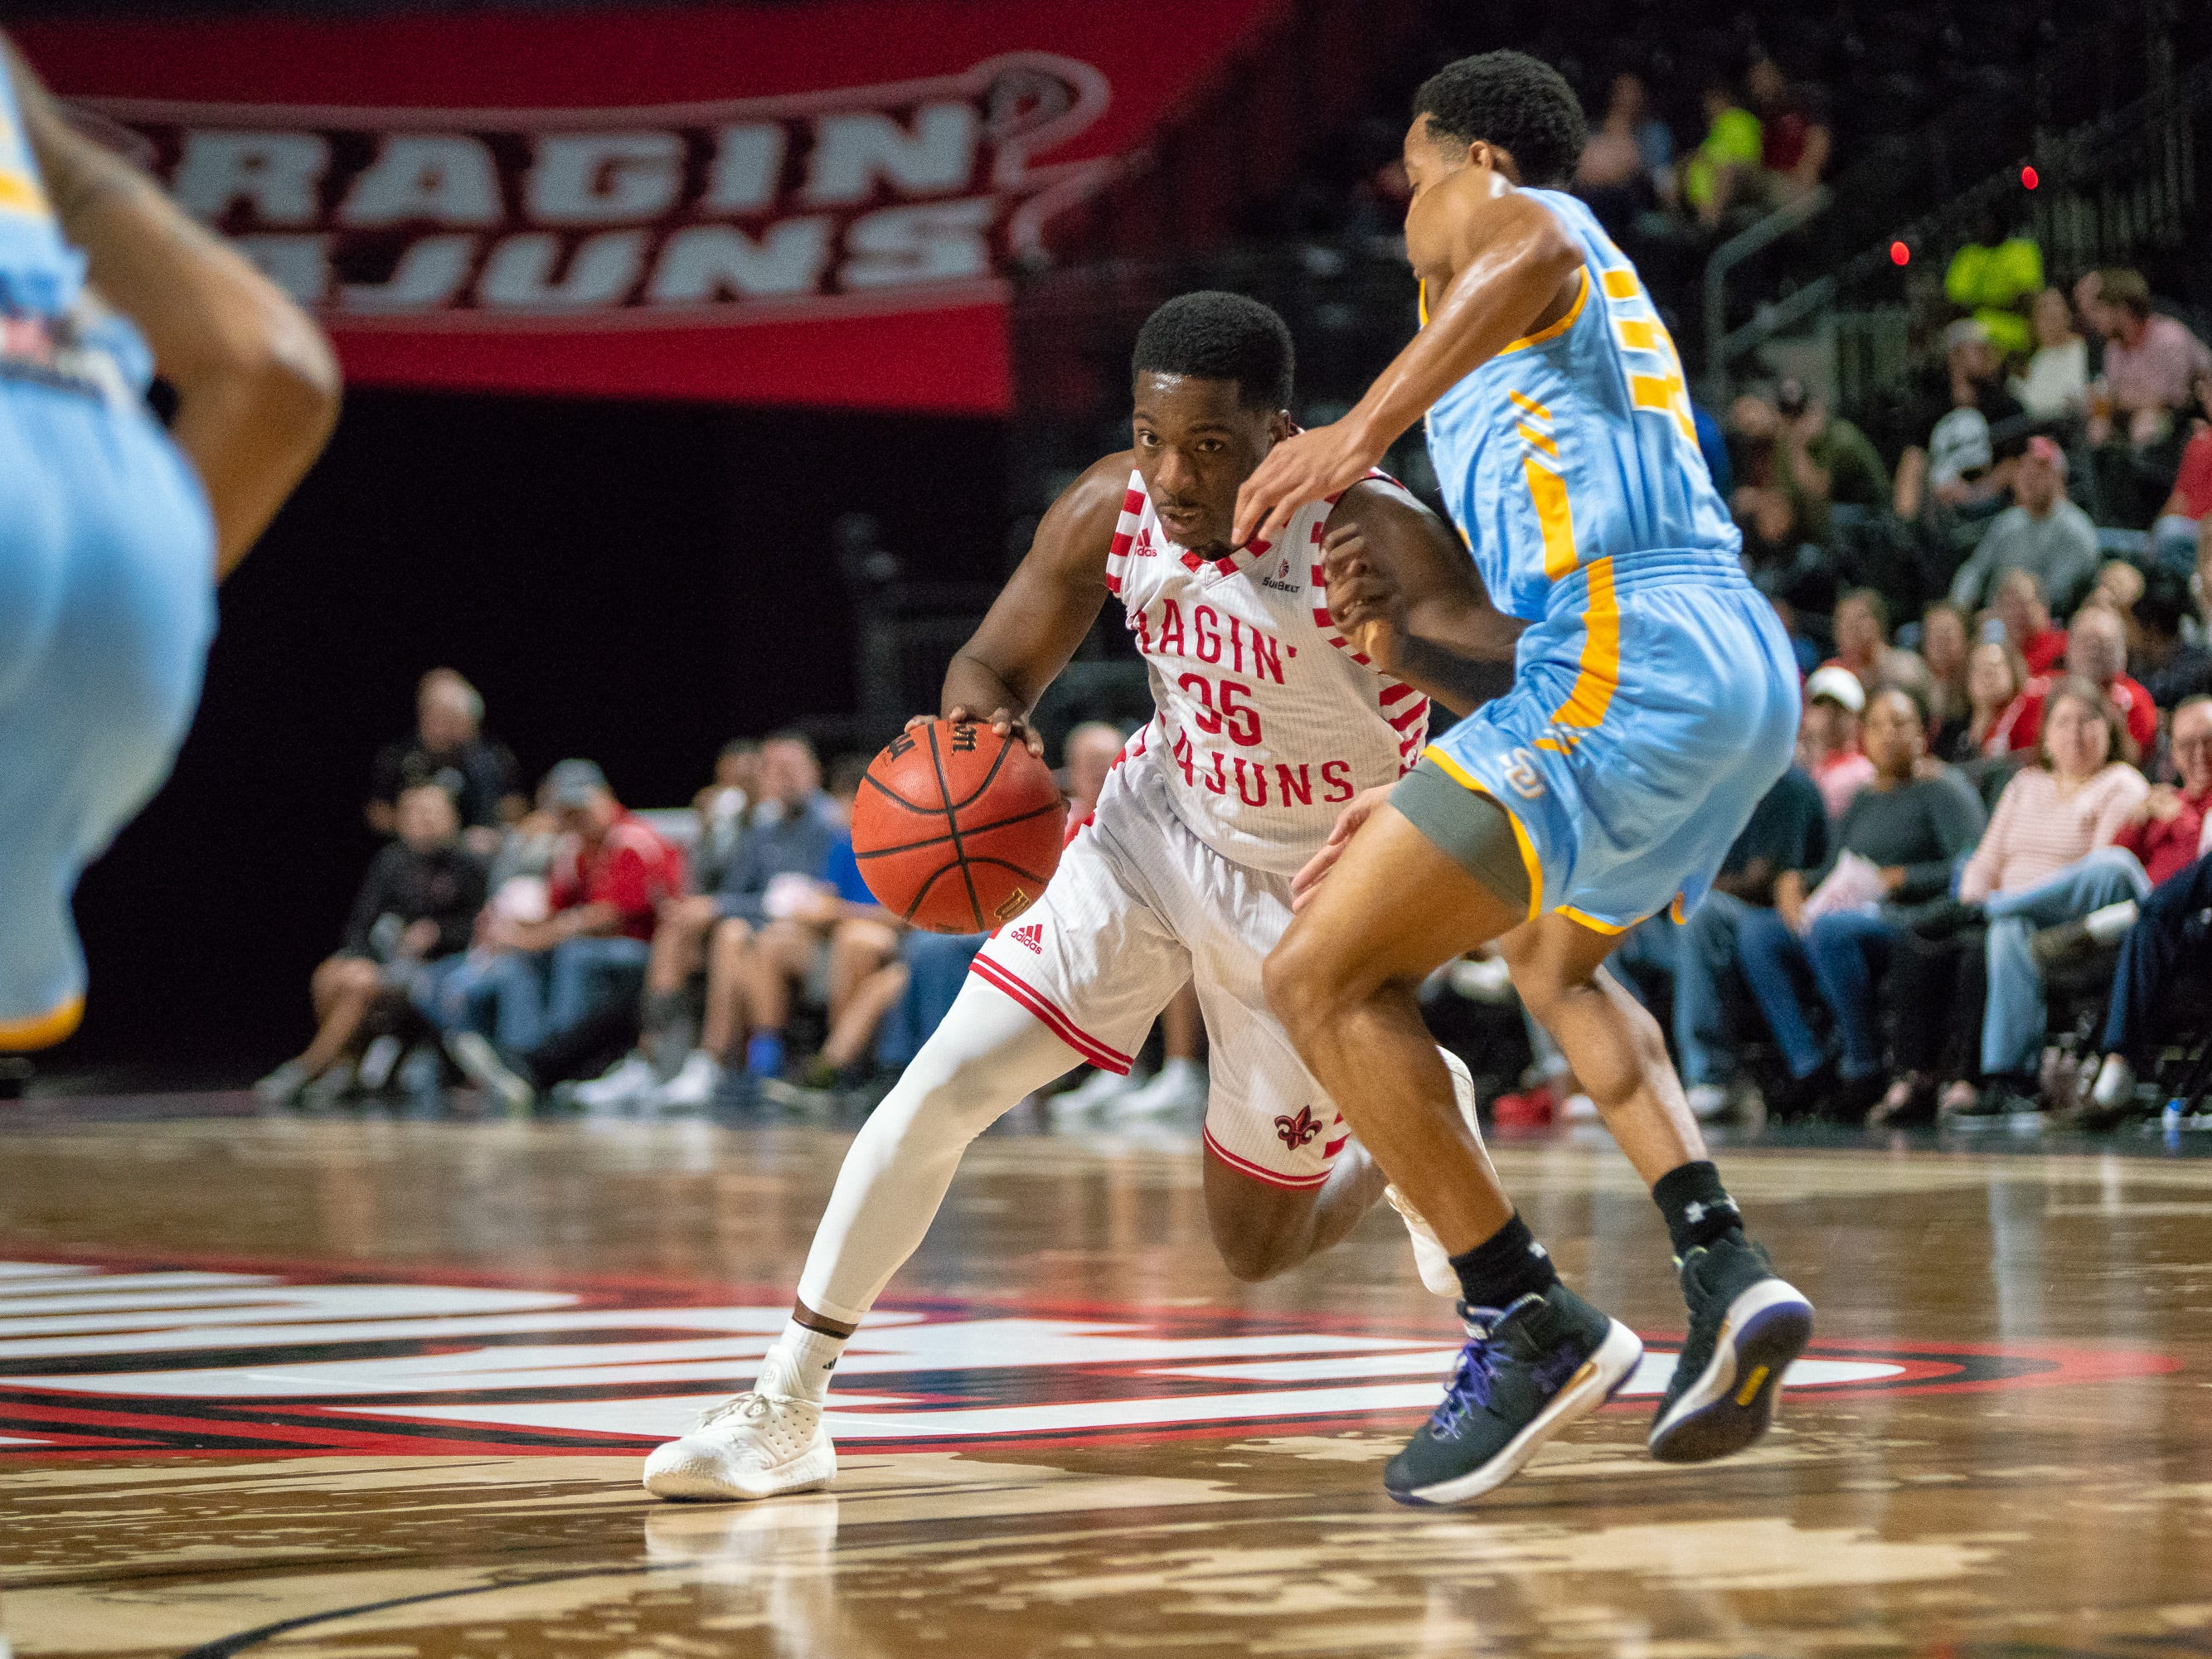 UL's Marcus Stroman drives through the defense to get to the goal as the Ragin' Cajuns play against the Southern University Jaguars at the Cajundome on December 1, 2018.